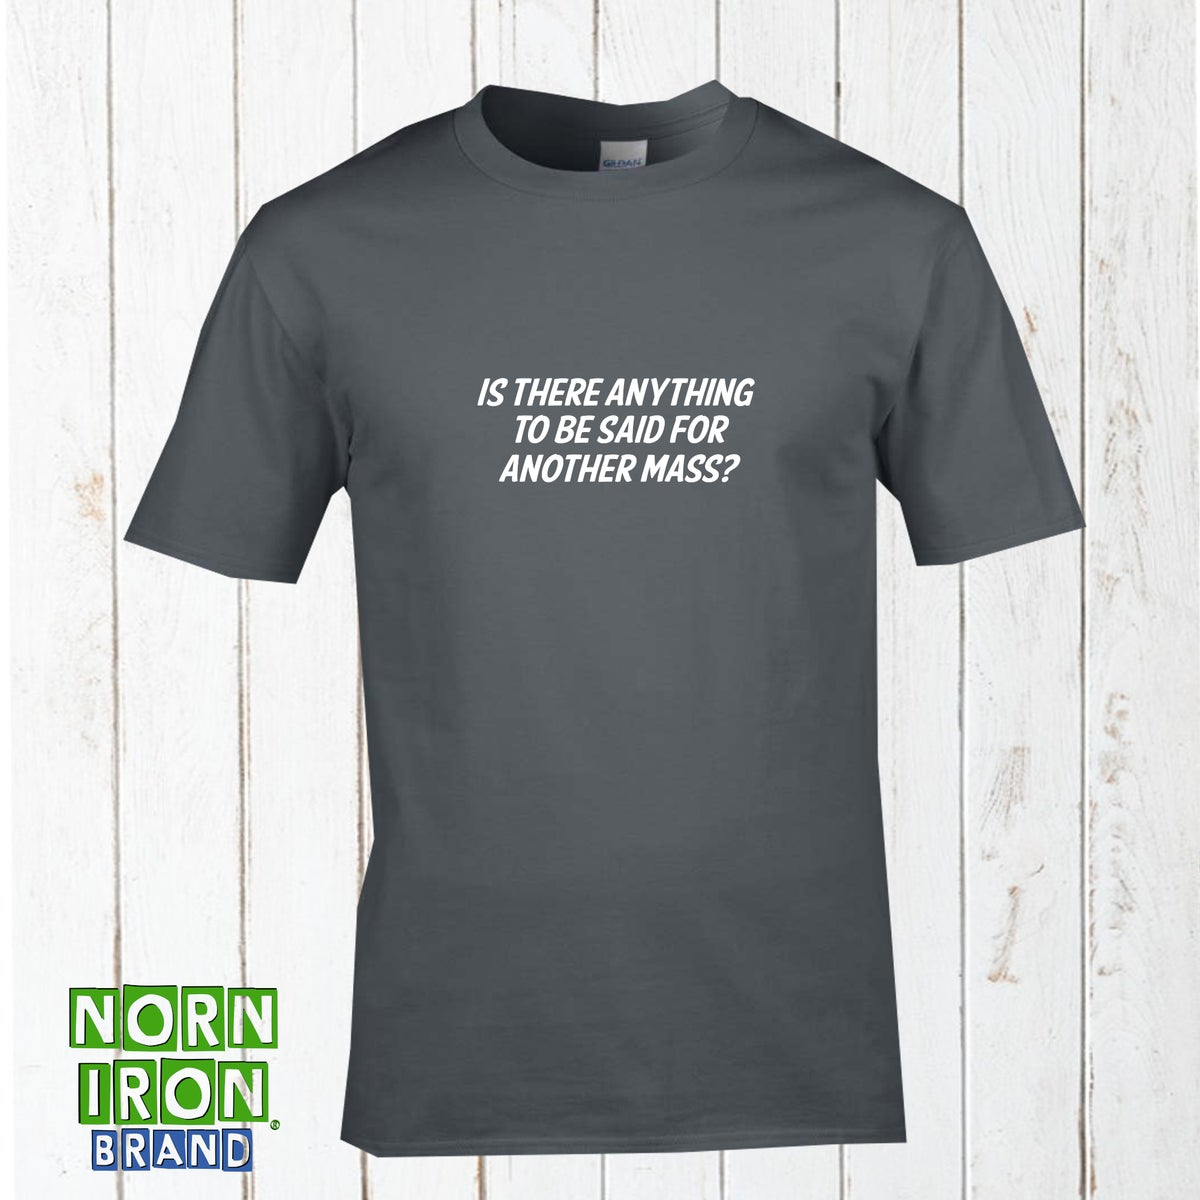 Is There Anything To Be Said For Another Mass? T-Shirt